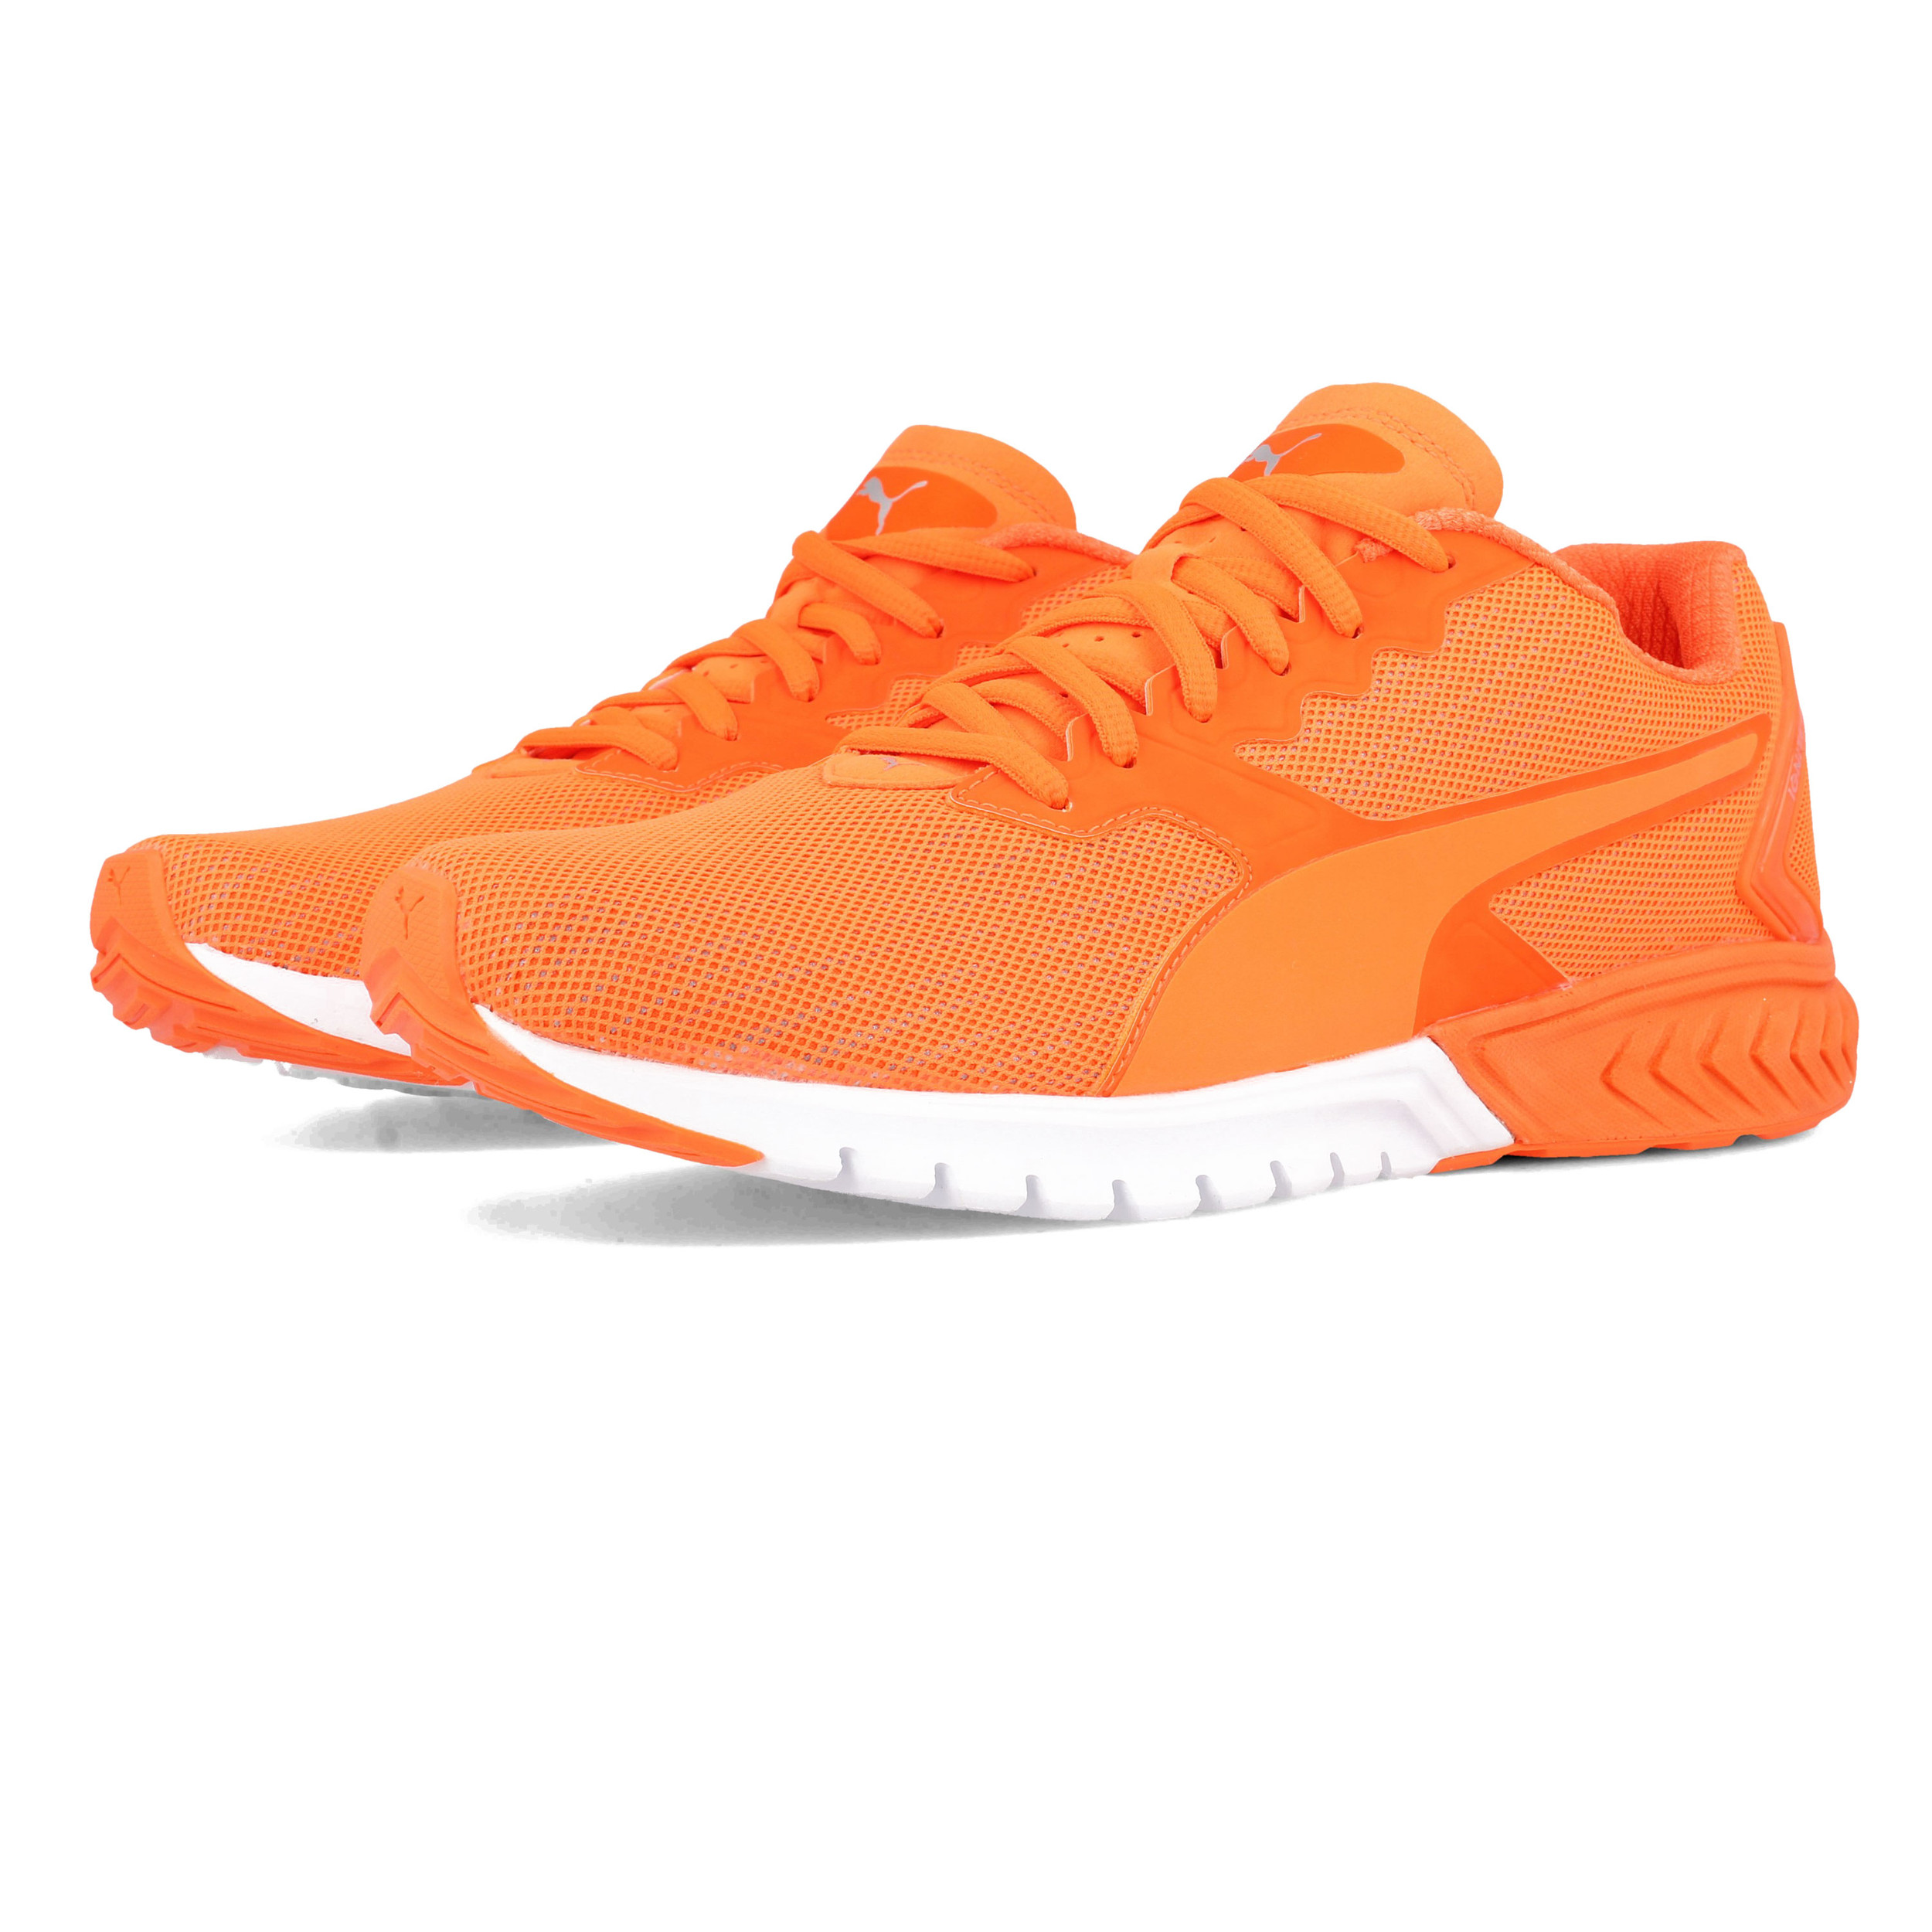 official photos 10f61 be45d Puma Mens Ignite Dual Nightcat Running Shoes Trainers Sneakers Orange Sports